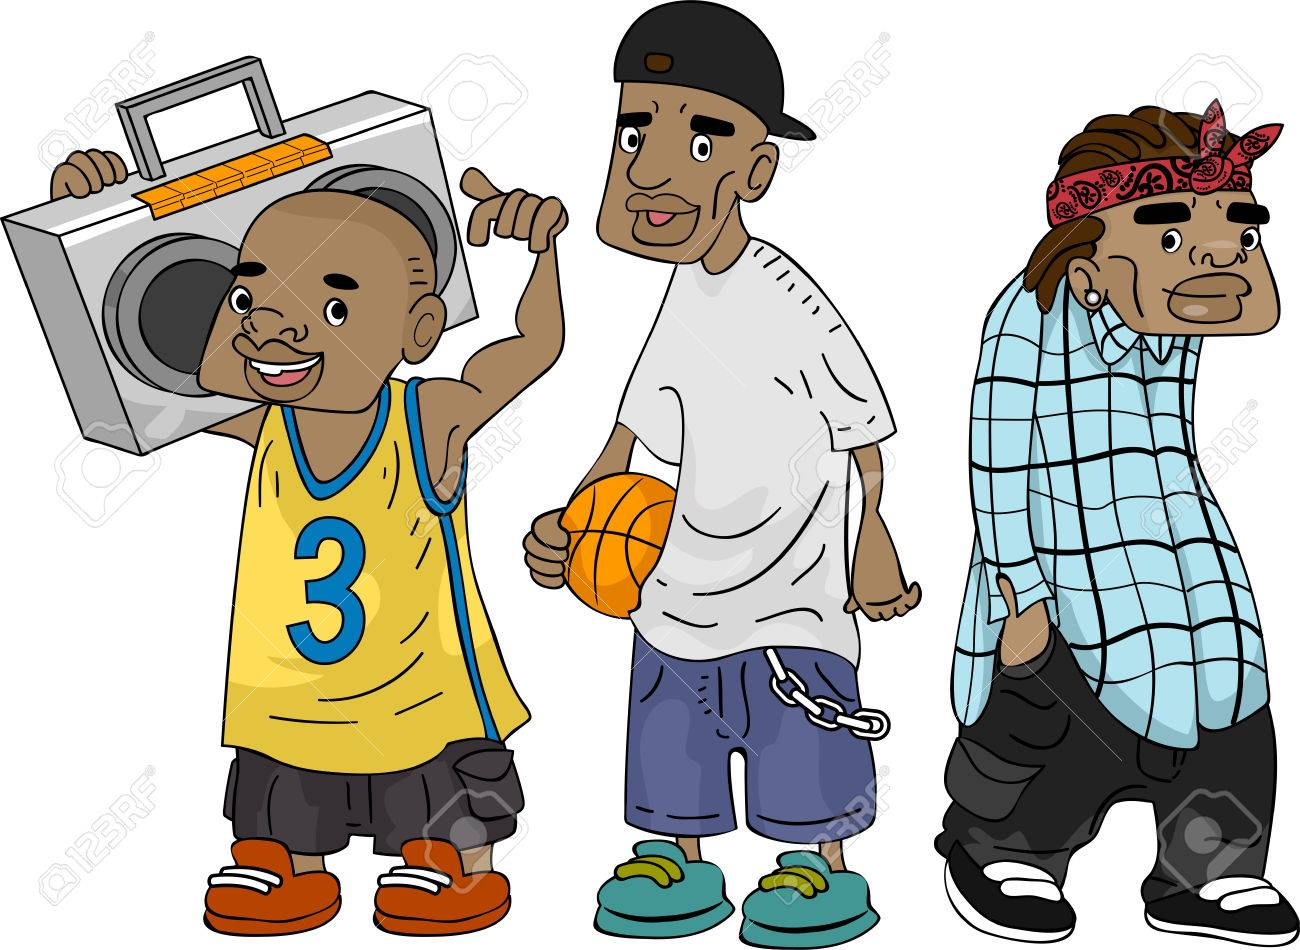 Illustration of african american teens sporting a ghetto look illustration of african american teens sporting a ghetto look stock illustration 26342225 sciox Images